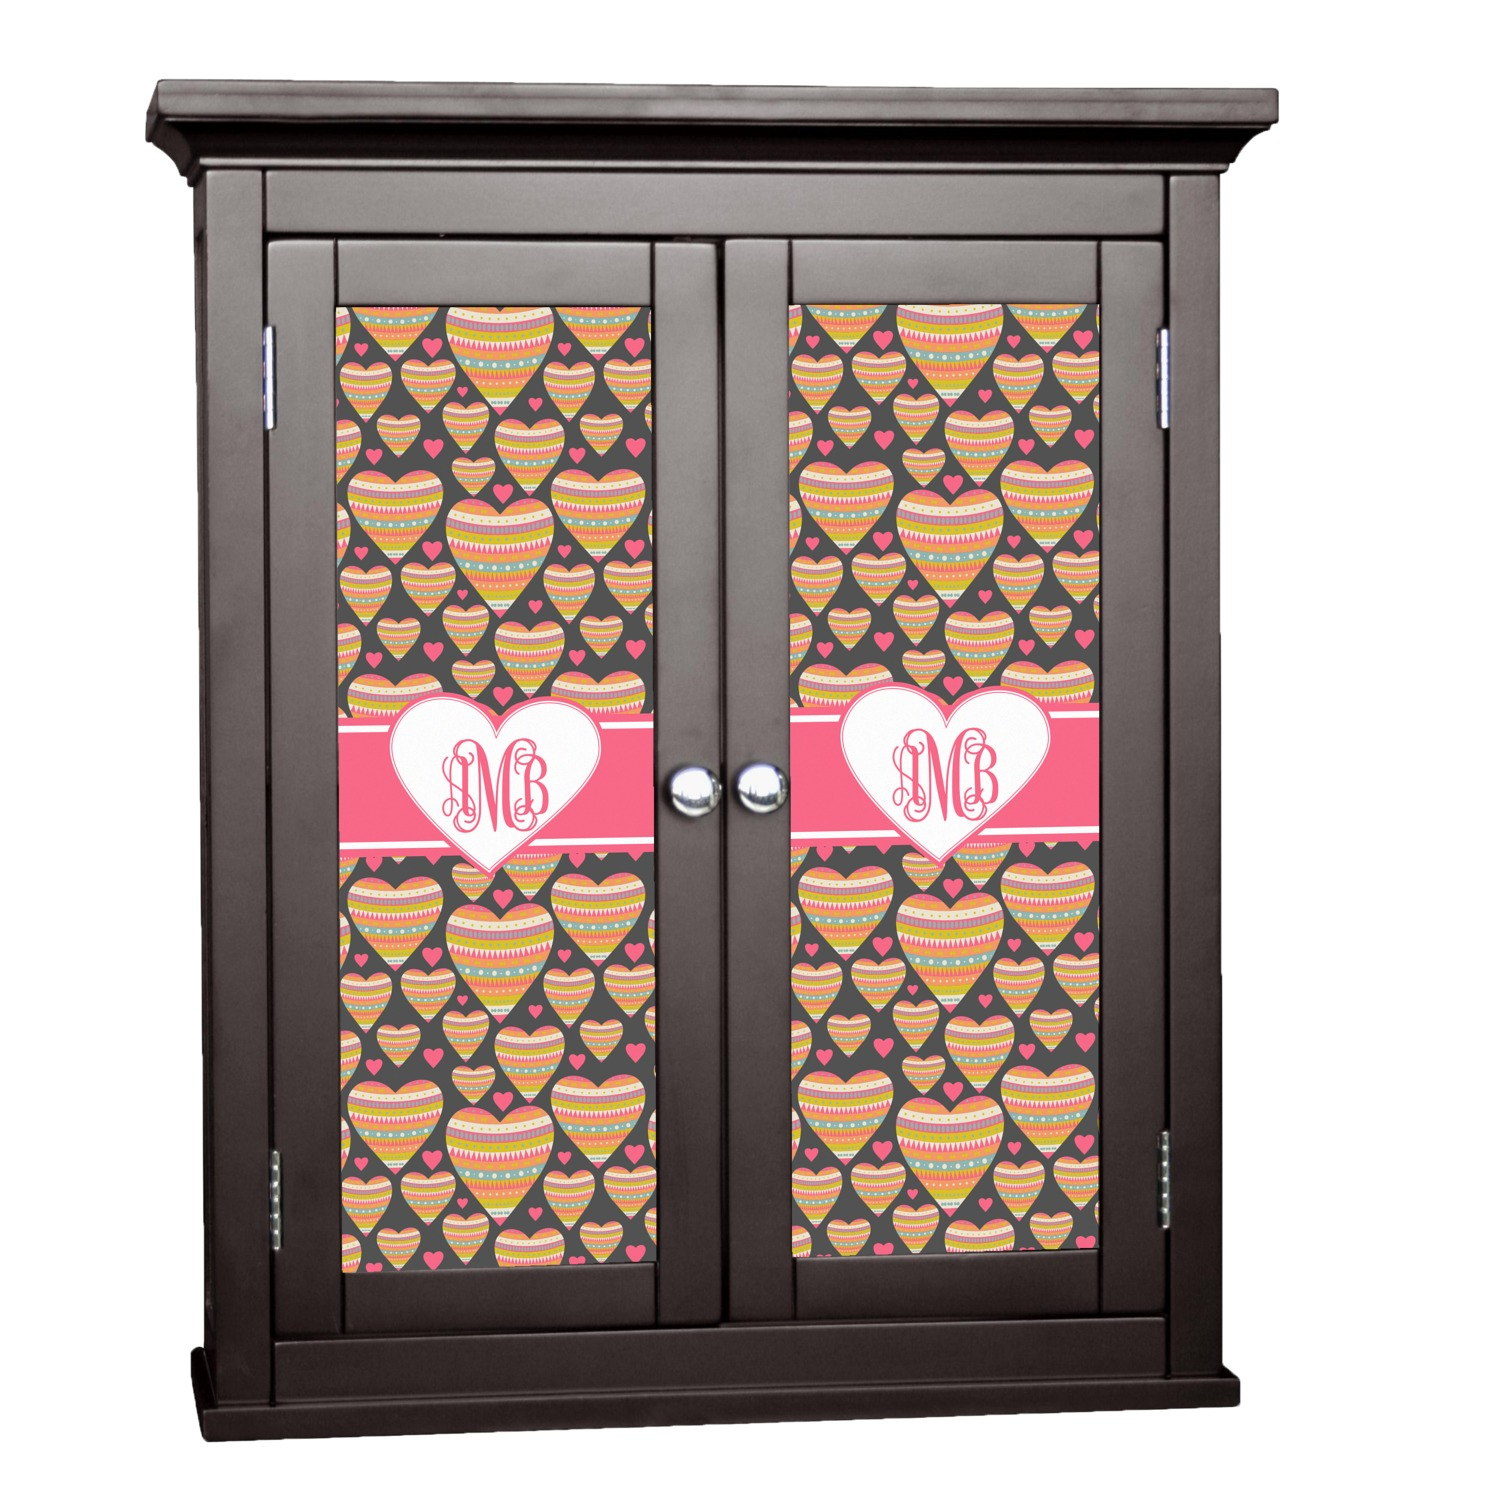 Hearts Cabinet Decal - Small (Personalized) - YouCustomizeIt